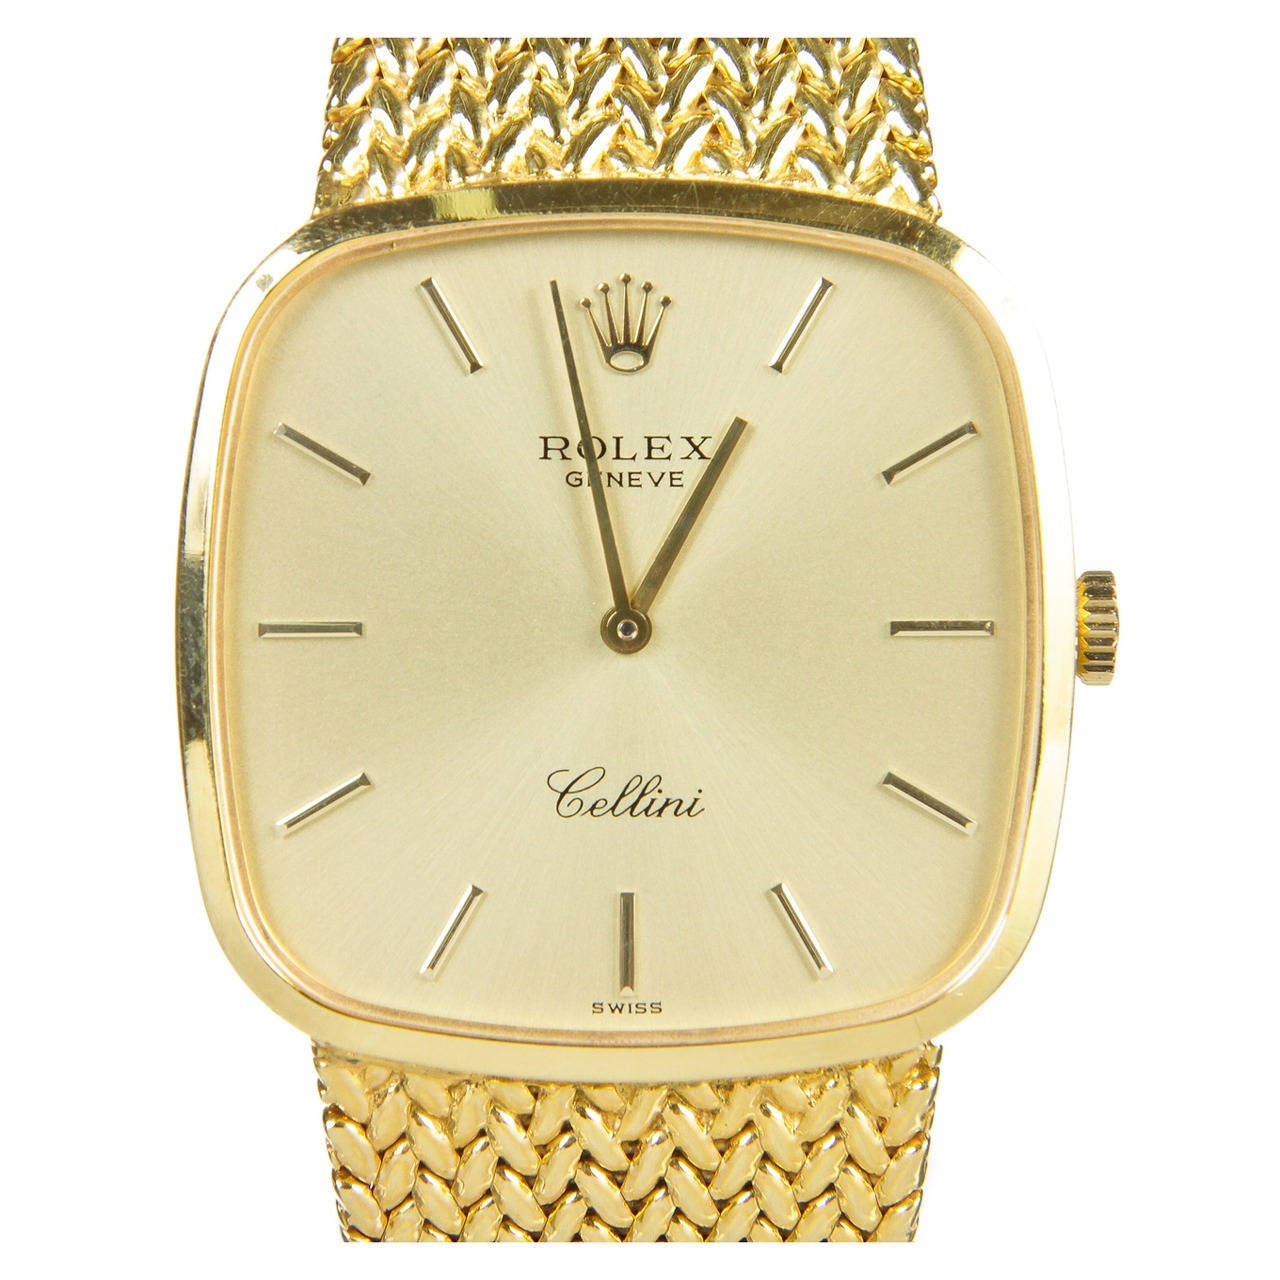 Rolex Cellini Gold With Diamonds